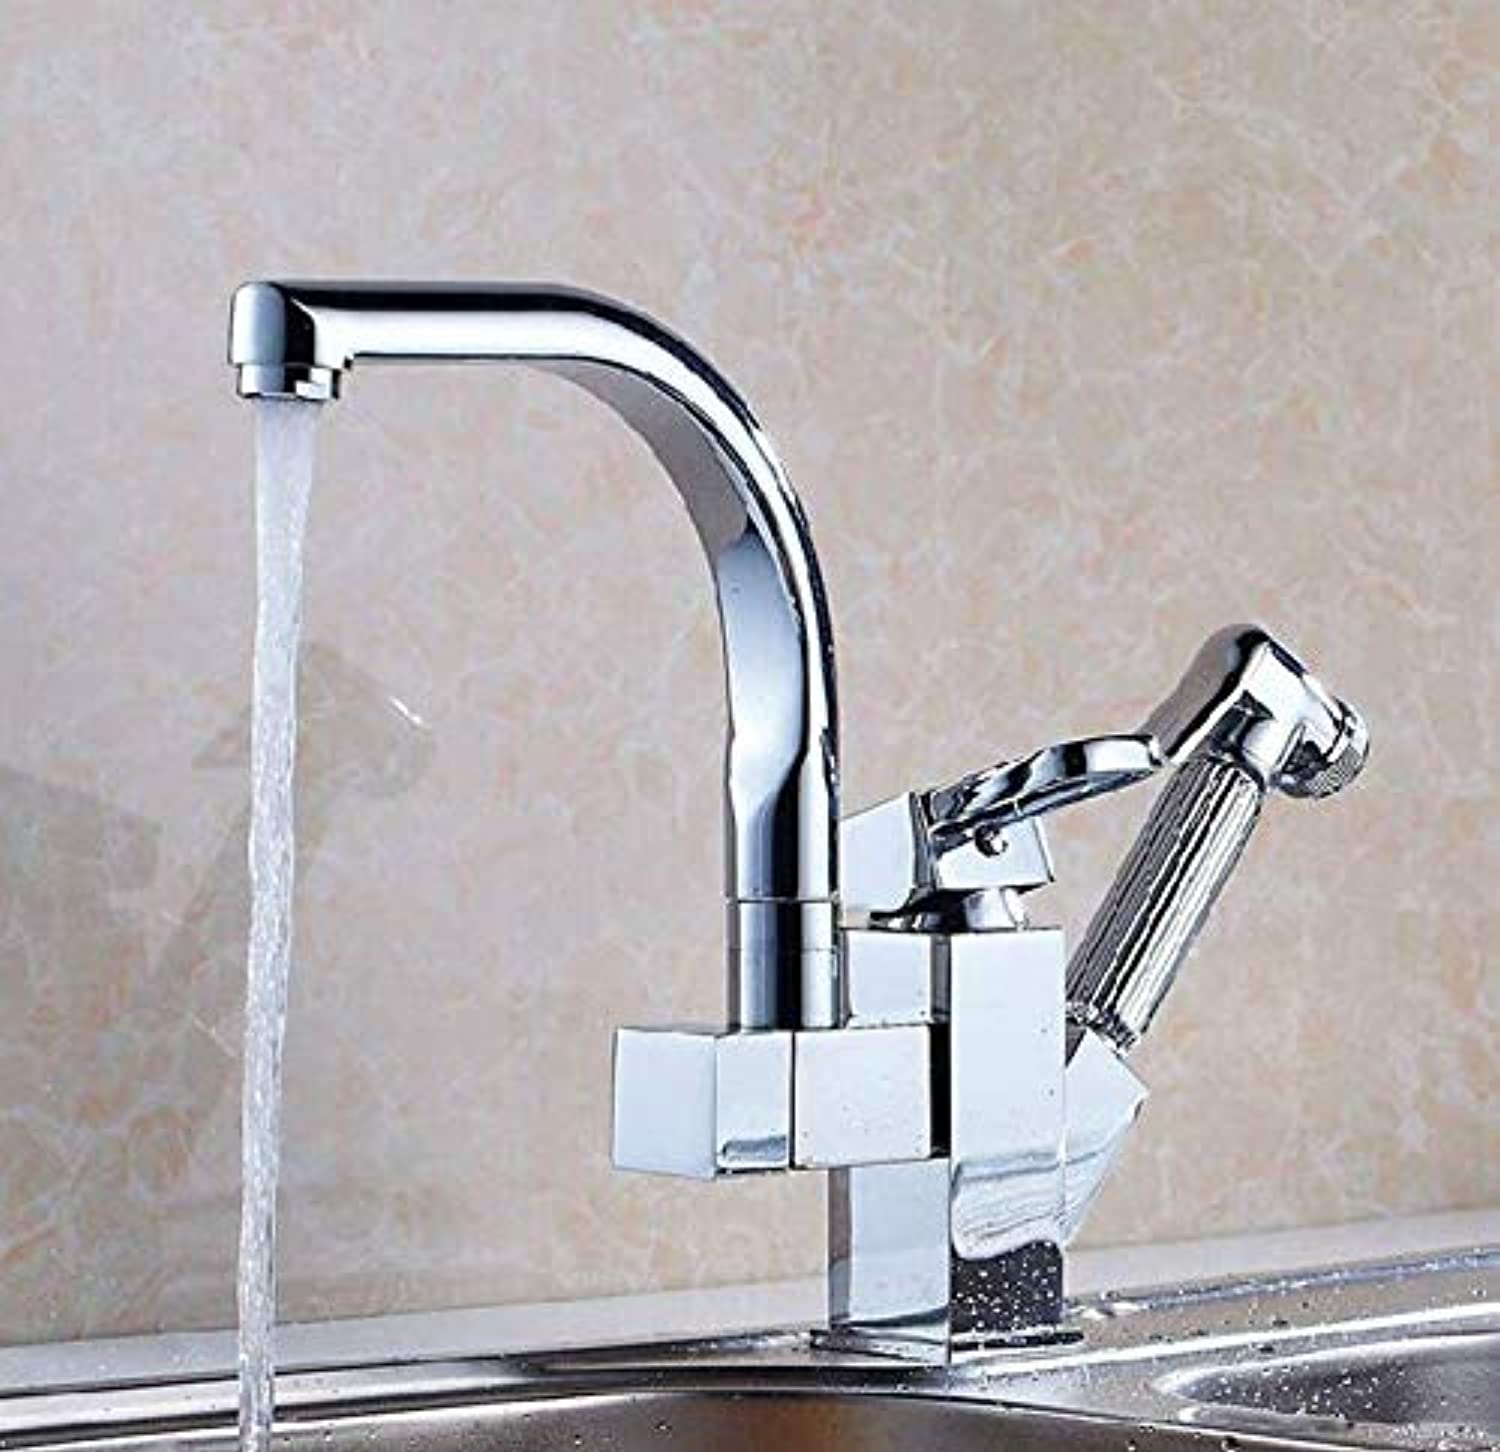 Kitchen Fauct Full Copper Kitchen Faucet Pull-Out Hot and Cold Sink Faucet Drawing Vegetables Basin Sink Faucet (color   -, Size   -)